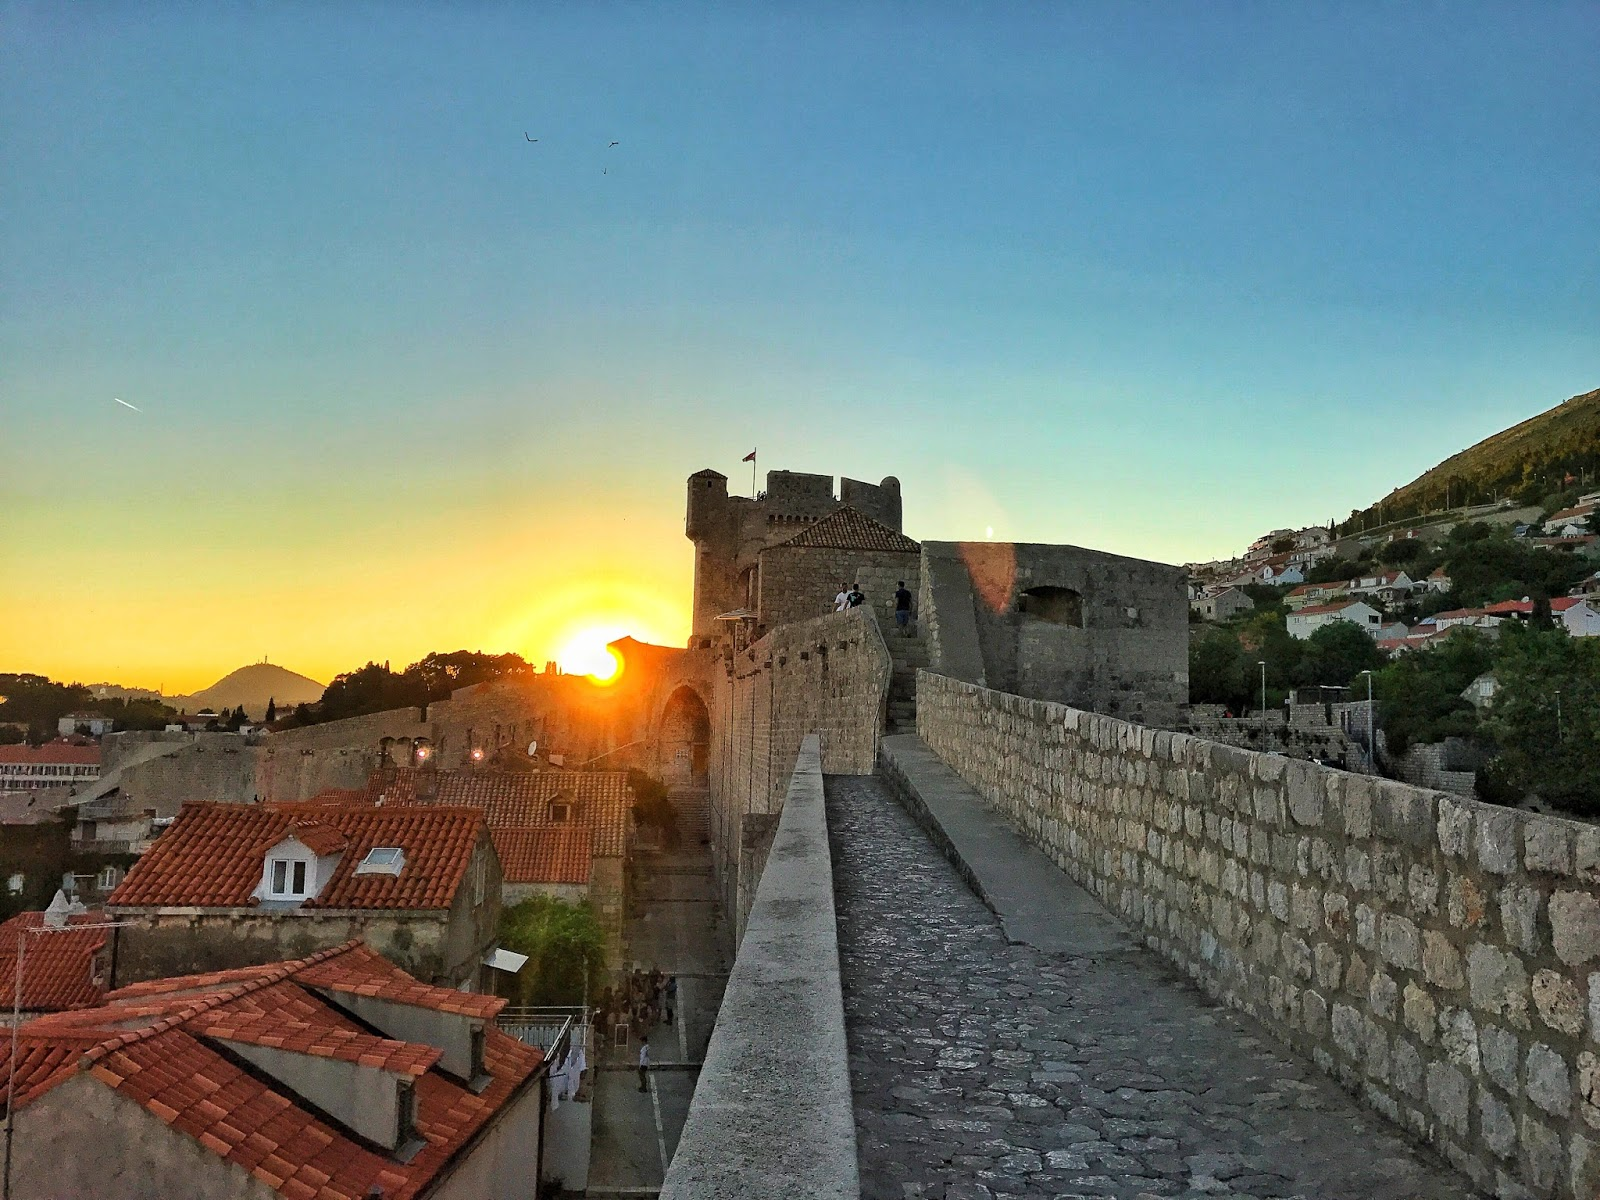 sunset scenery on the old city walls Dubrovnik